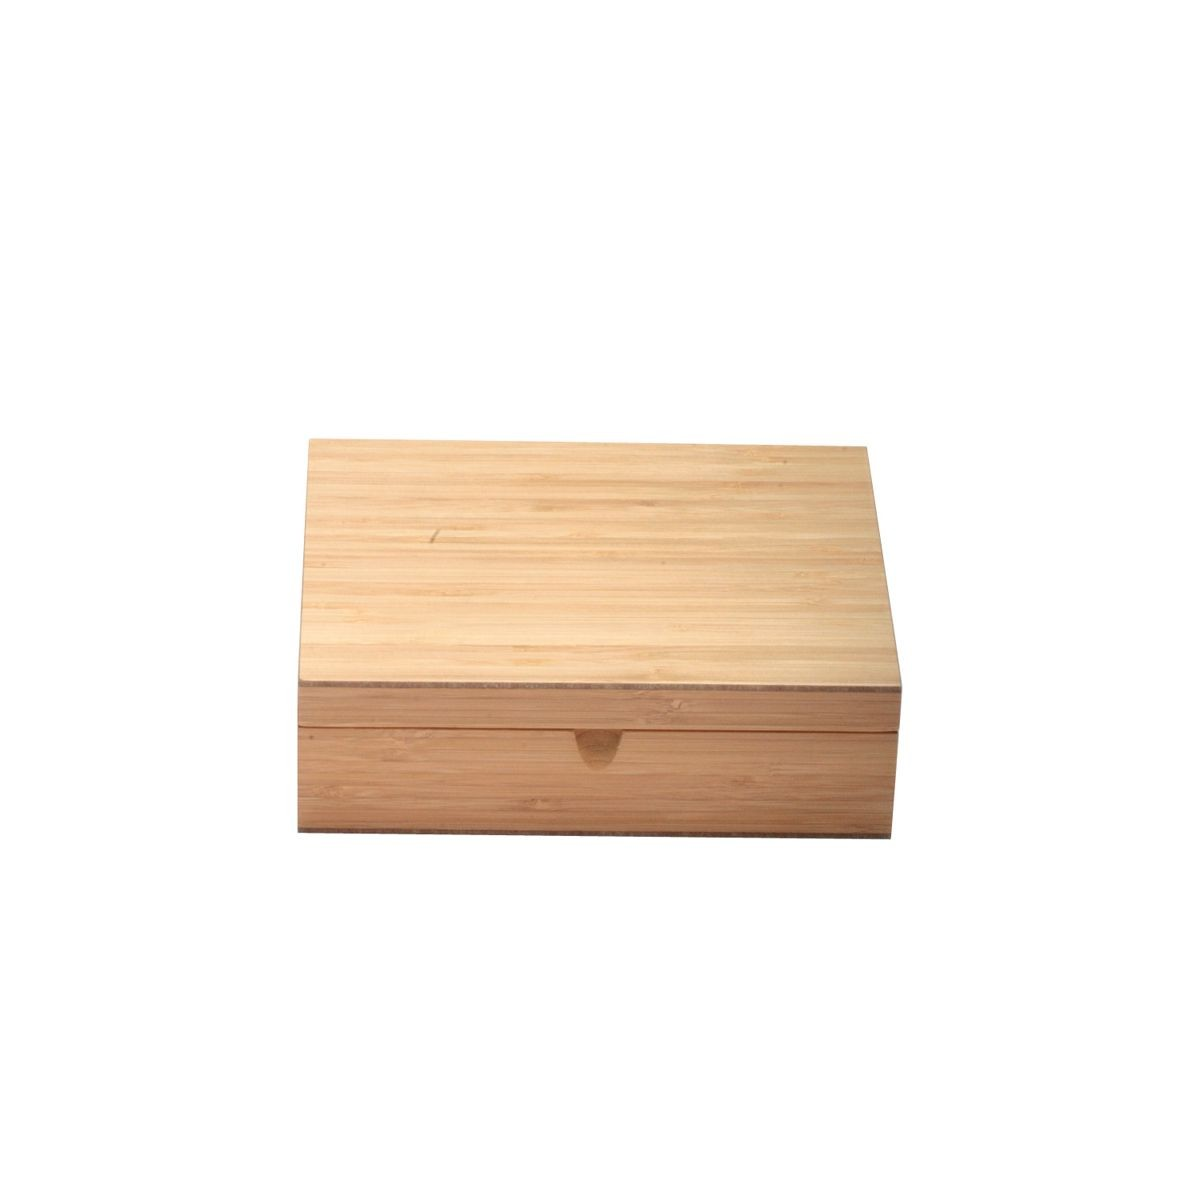 Service Ideas TBC06 Solid Bamboo Wood Tea Chest, 6 Compartments